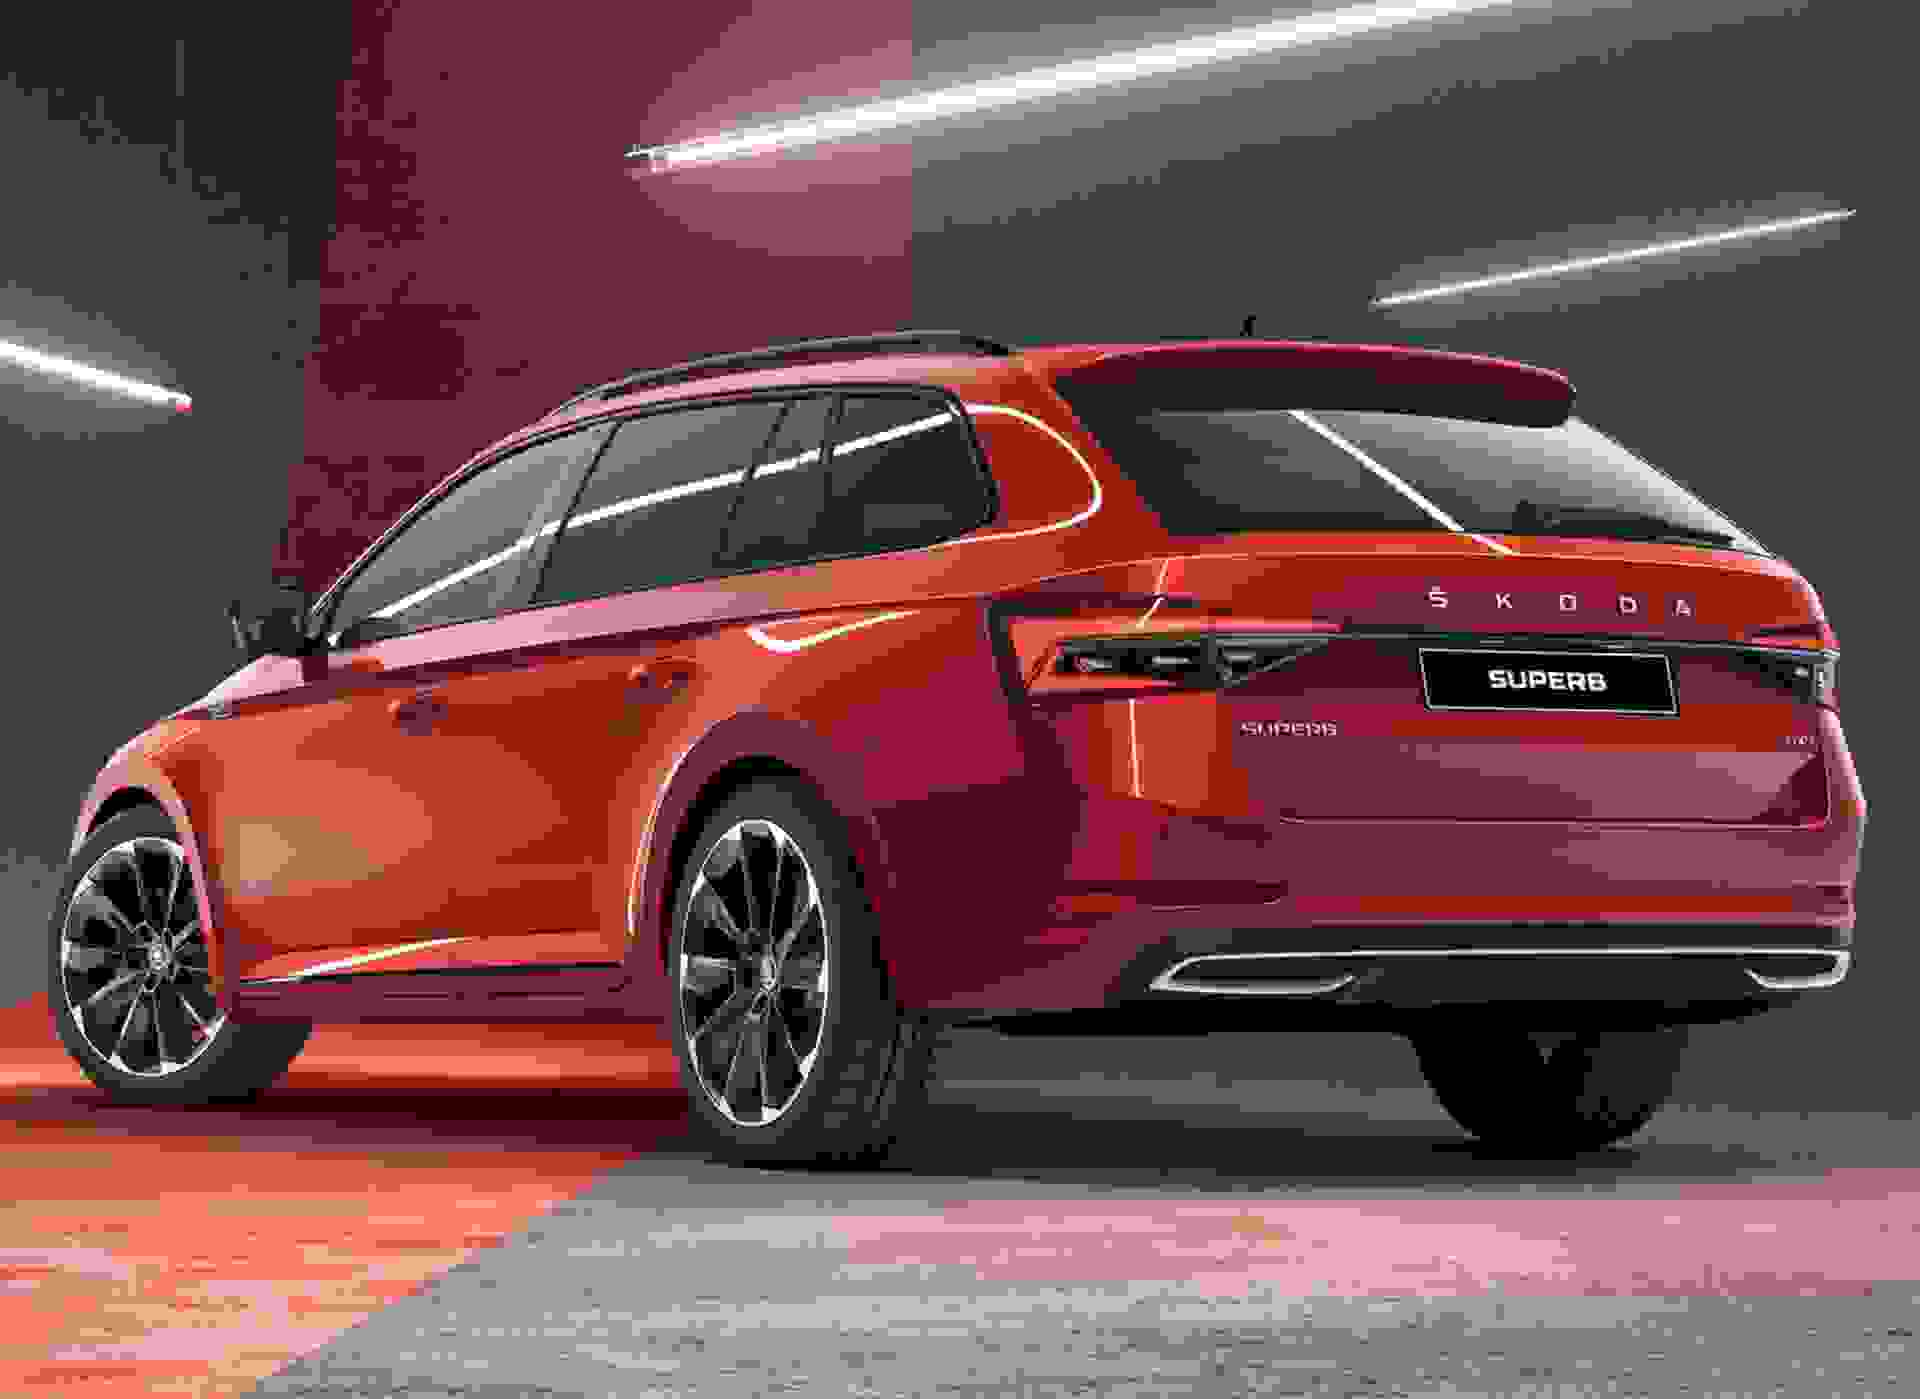 Superb Sportline Plus